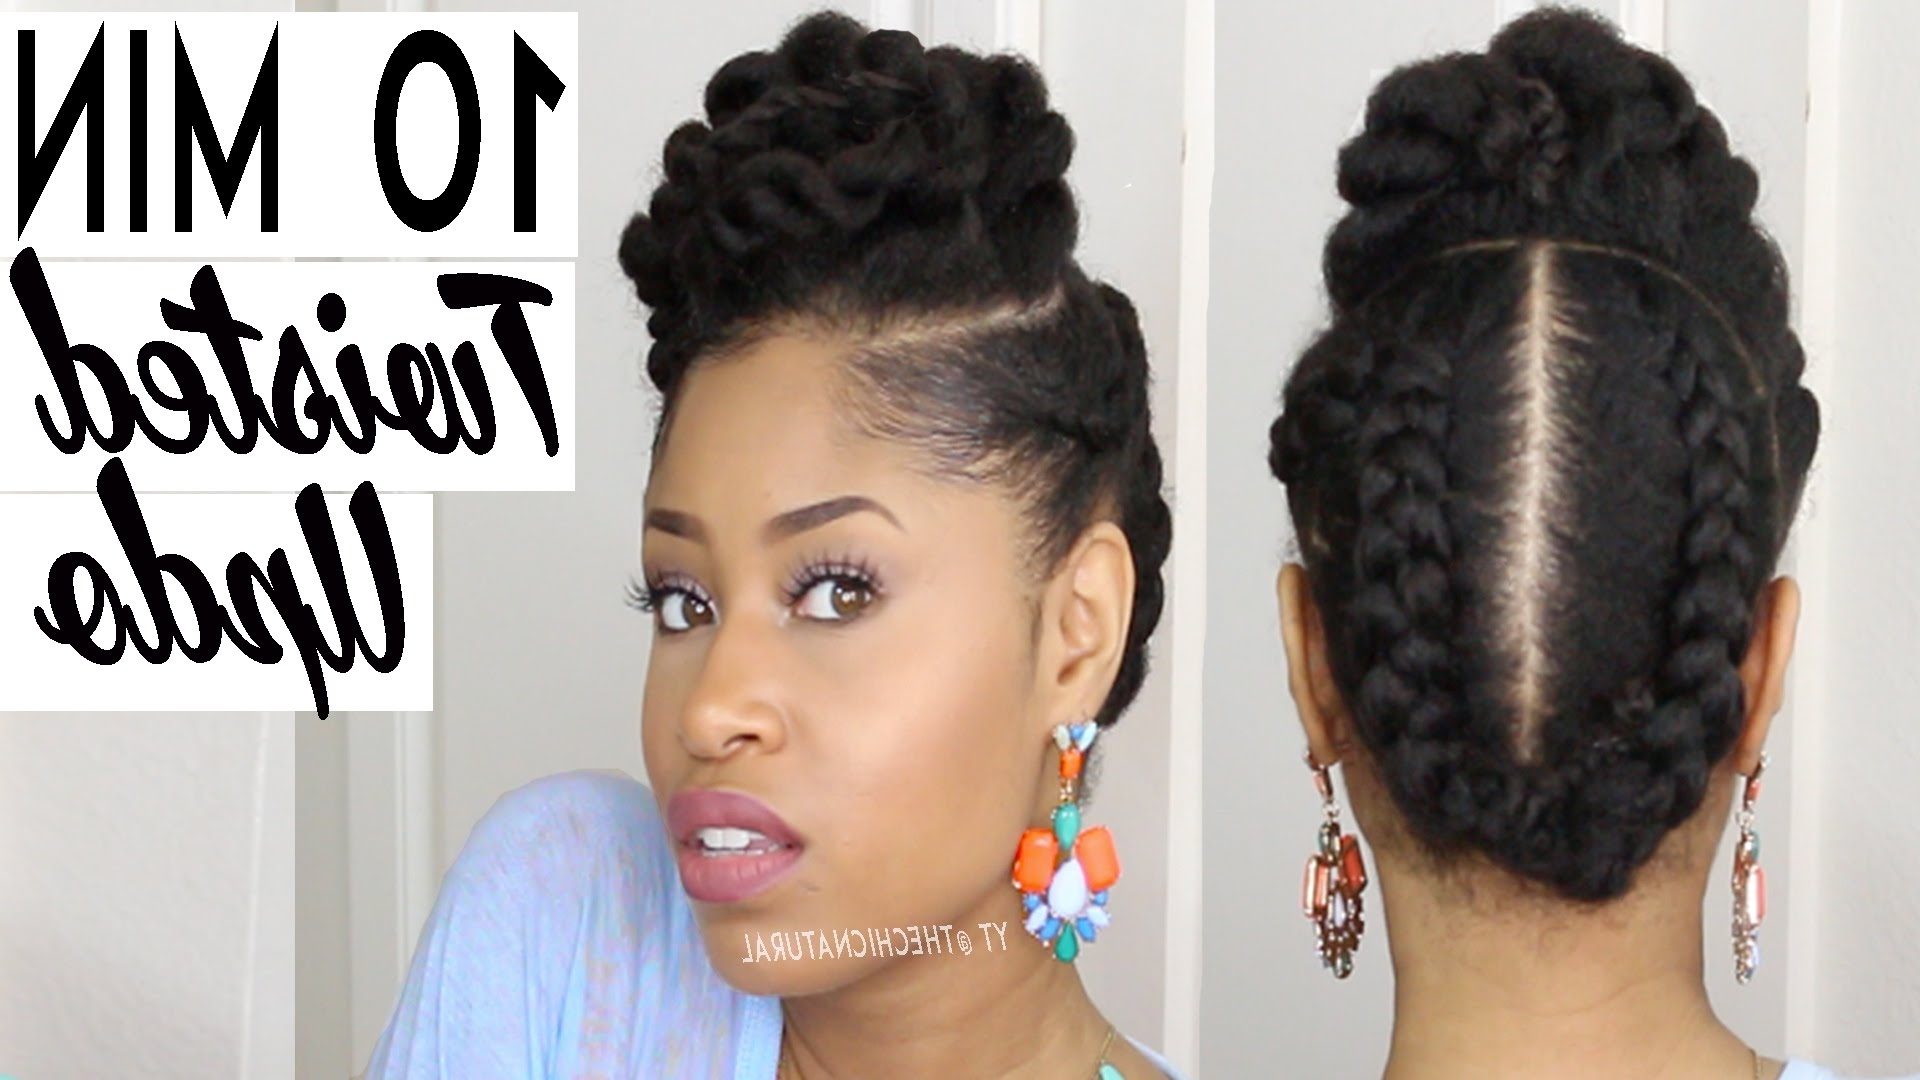 The 10 Minute Twisted Updo | Natural Hairstyle – Youtube With Regard To Ethnic Updo Hairstyles (View 6 of 15)